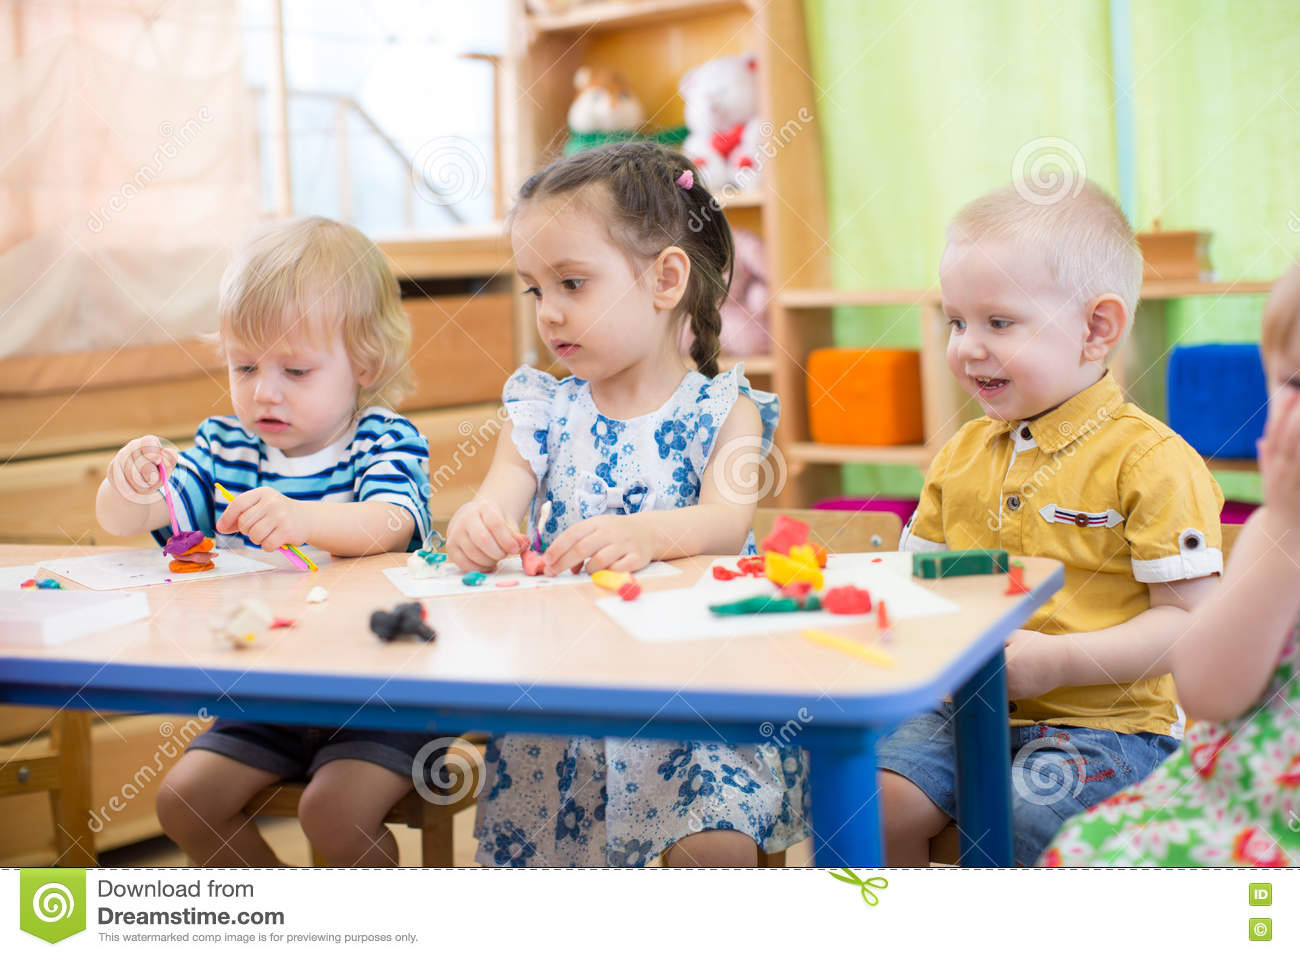 Best ideas about Kids Doing Arts And Crafts . Save or Pin Kids Doing Arts And Crafts In Day Care Centre Stock Image Now.